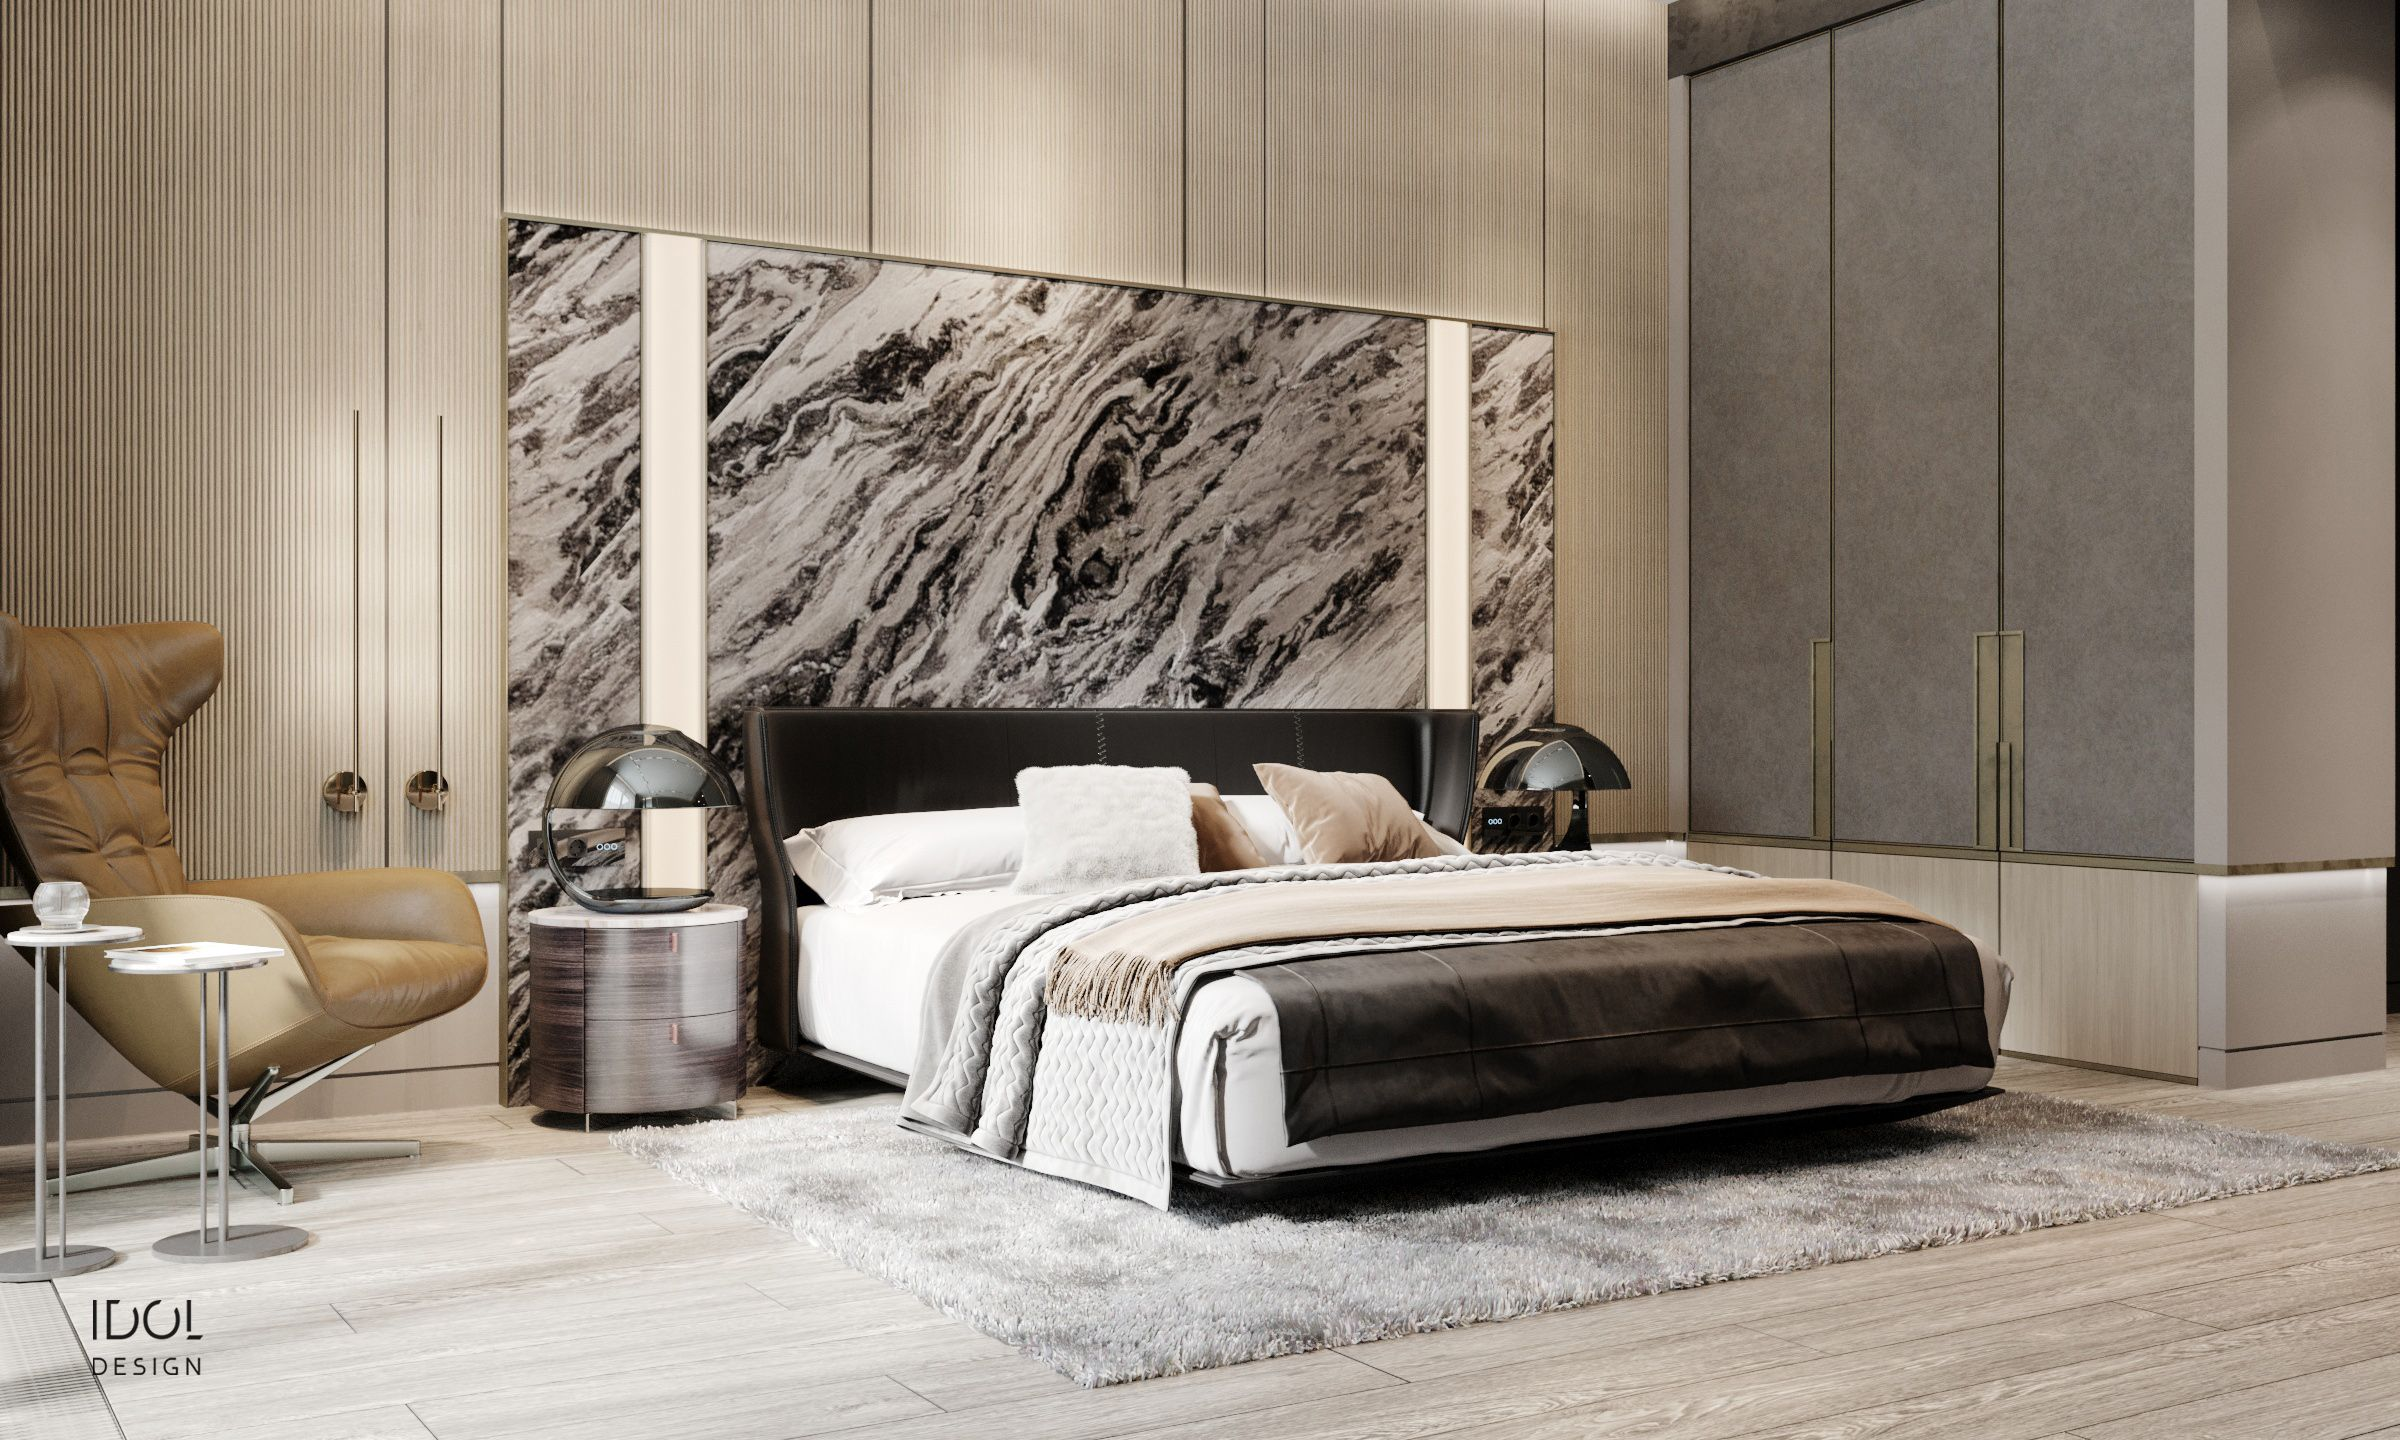 Luxury Modern Bedroom With Marble Headboard And Lights